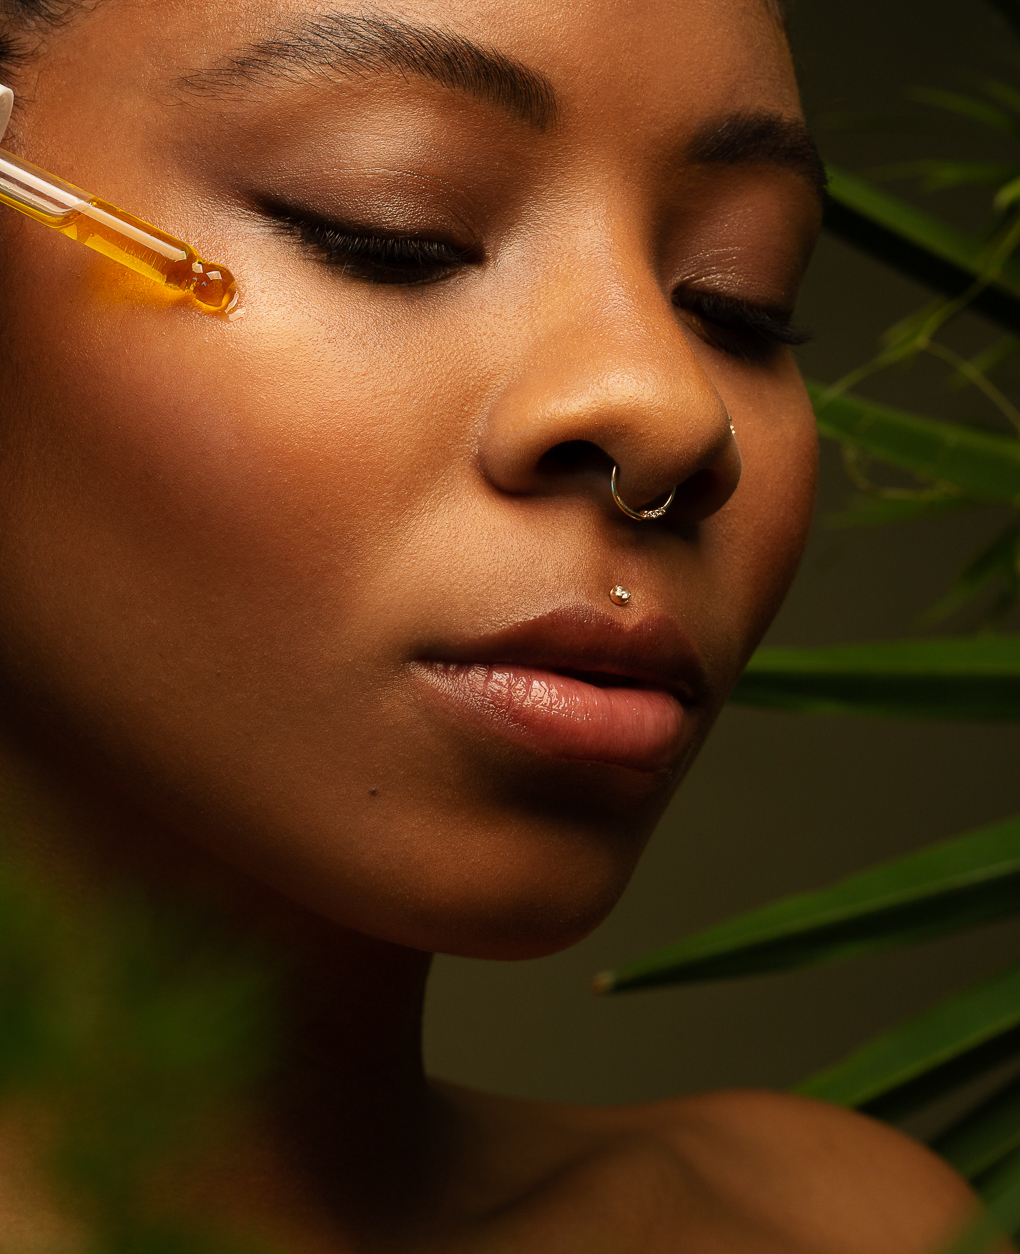 Close up beauty portrait of black skin and face serum by woman photographers Ella Sophie, Oakland